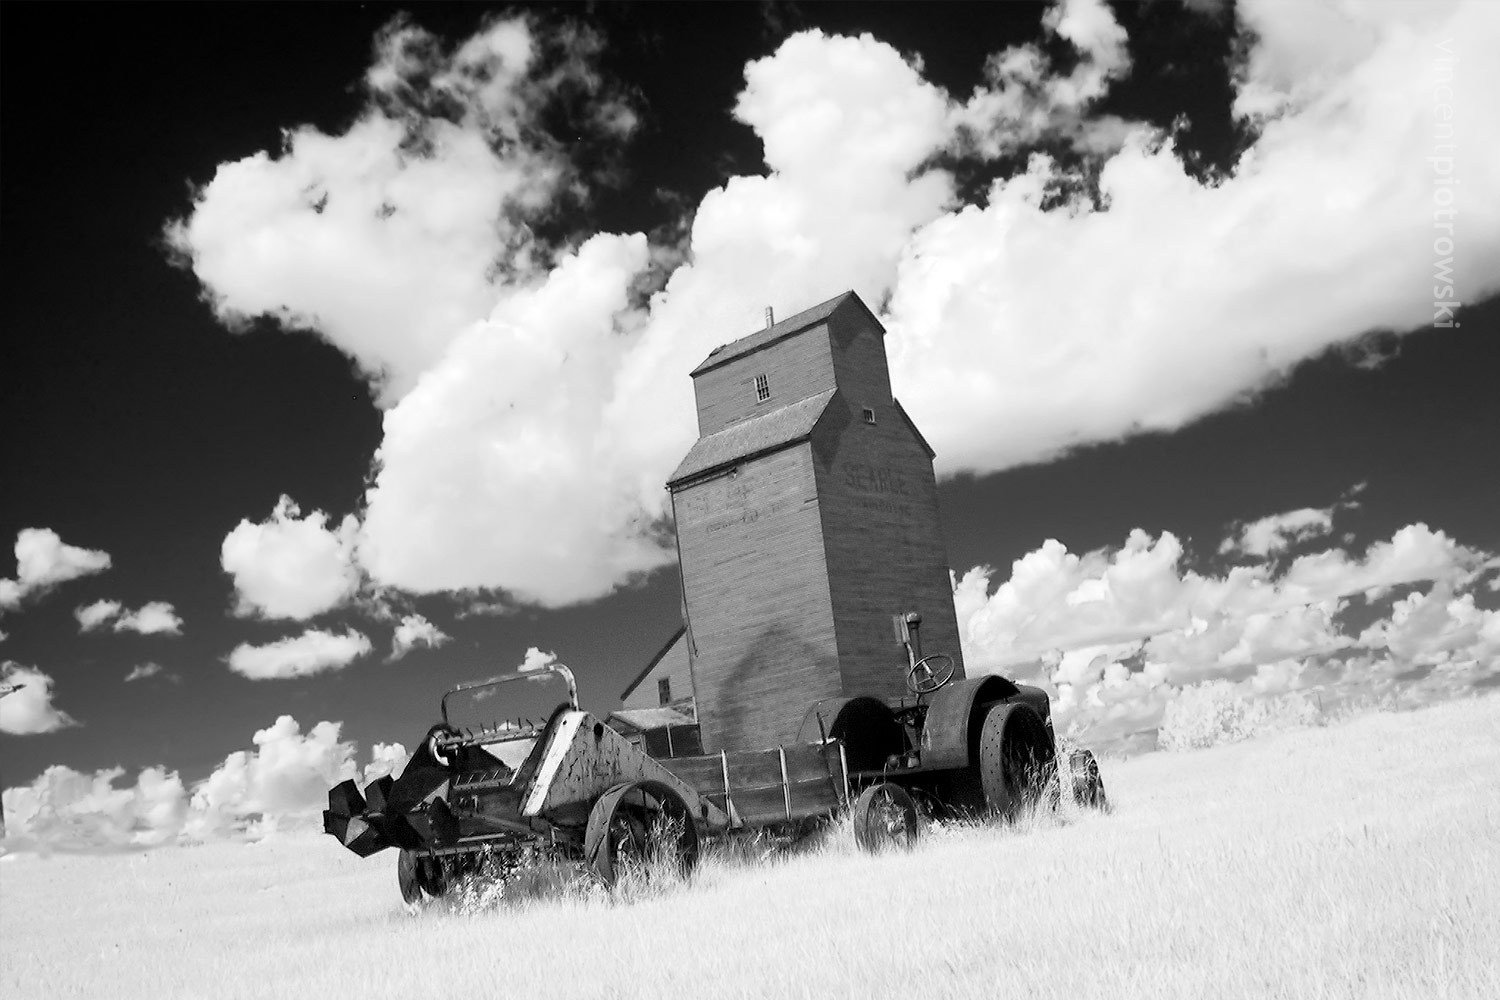 A picture of the grain elevators in Rowley Alberta taken with an infrared filter with a tractor in the foreground.